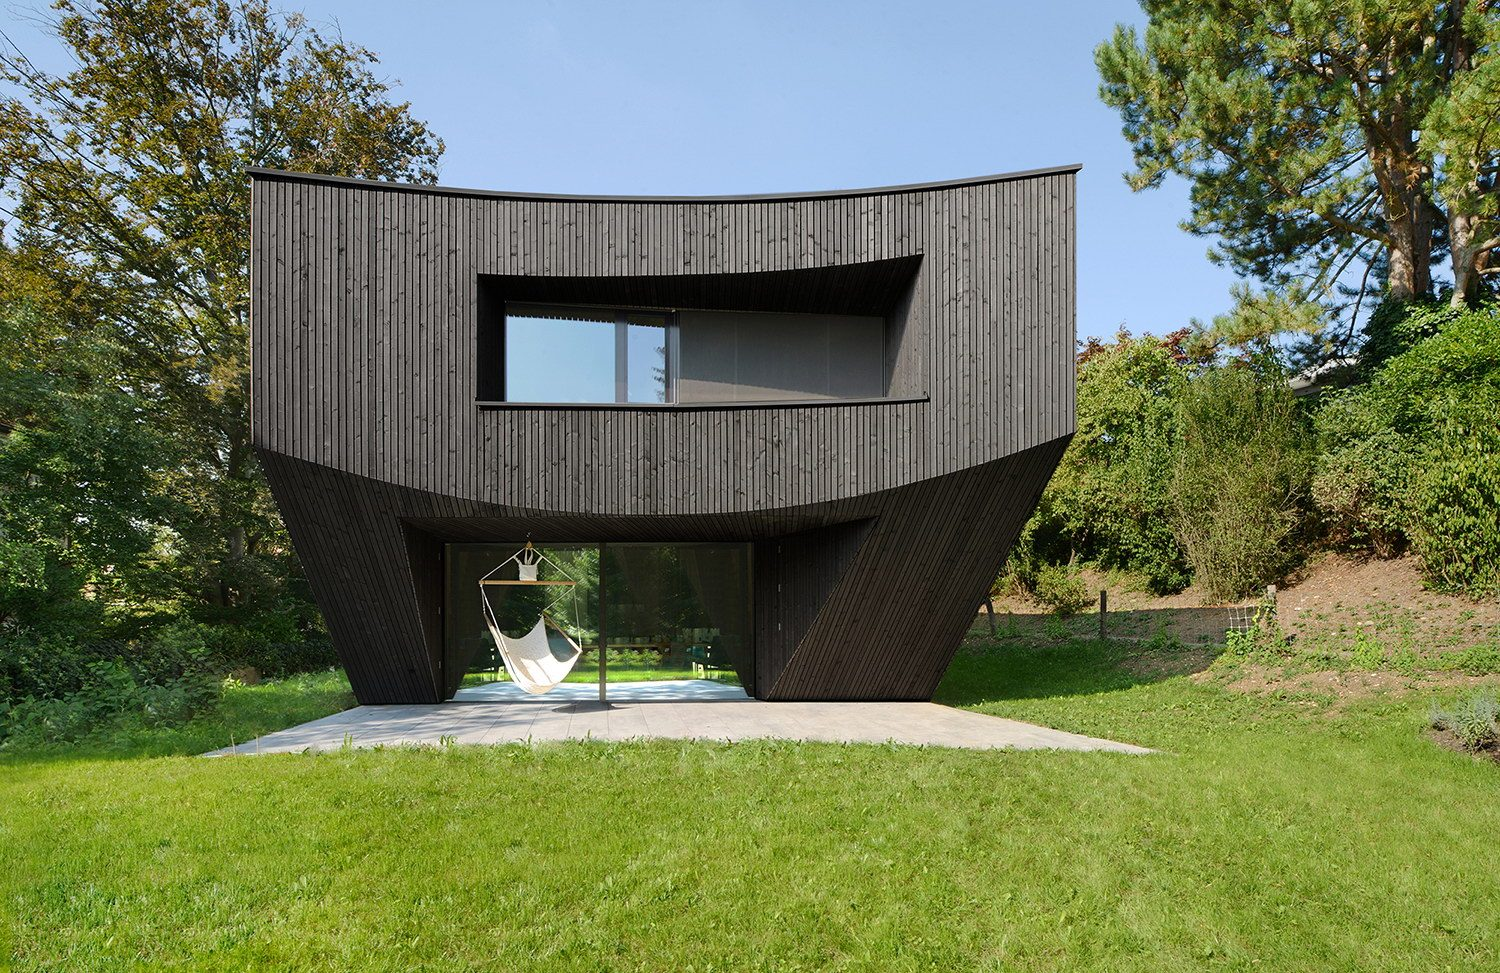 Casa Curved by Daluz Gonzalez Architekten